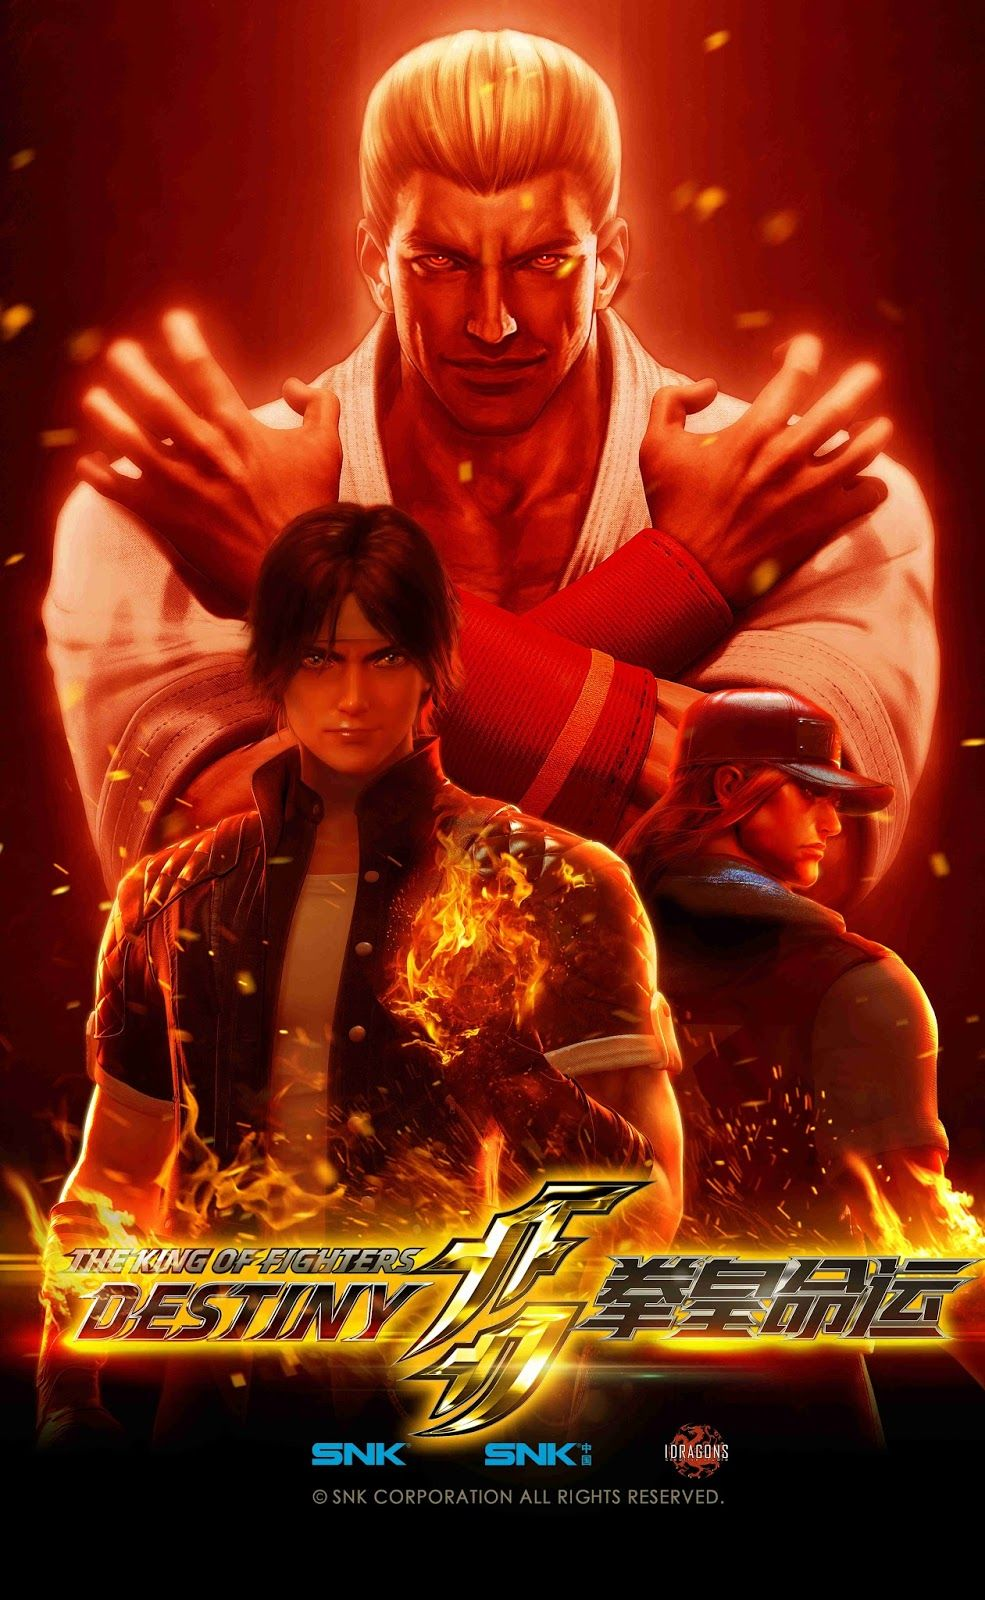 The King Of Fighters Destiny CGI Anime Movie Gets Movie